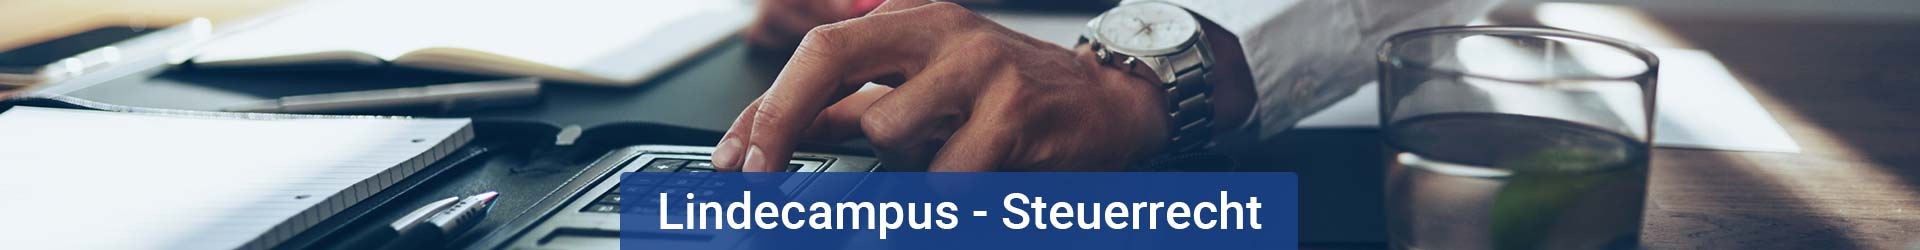 Steuerrecht am Lindecampus